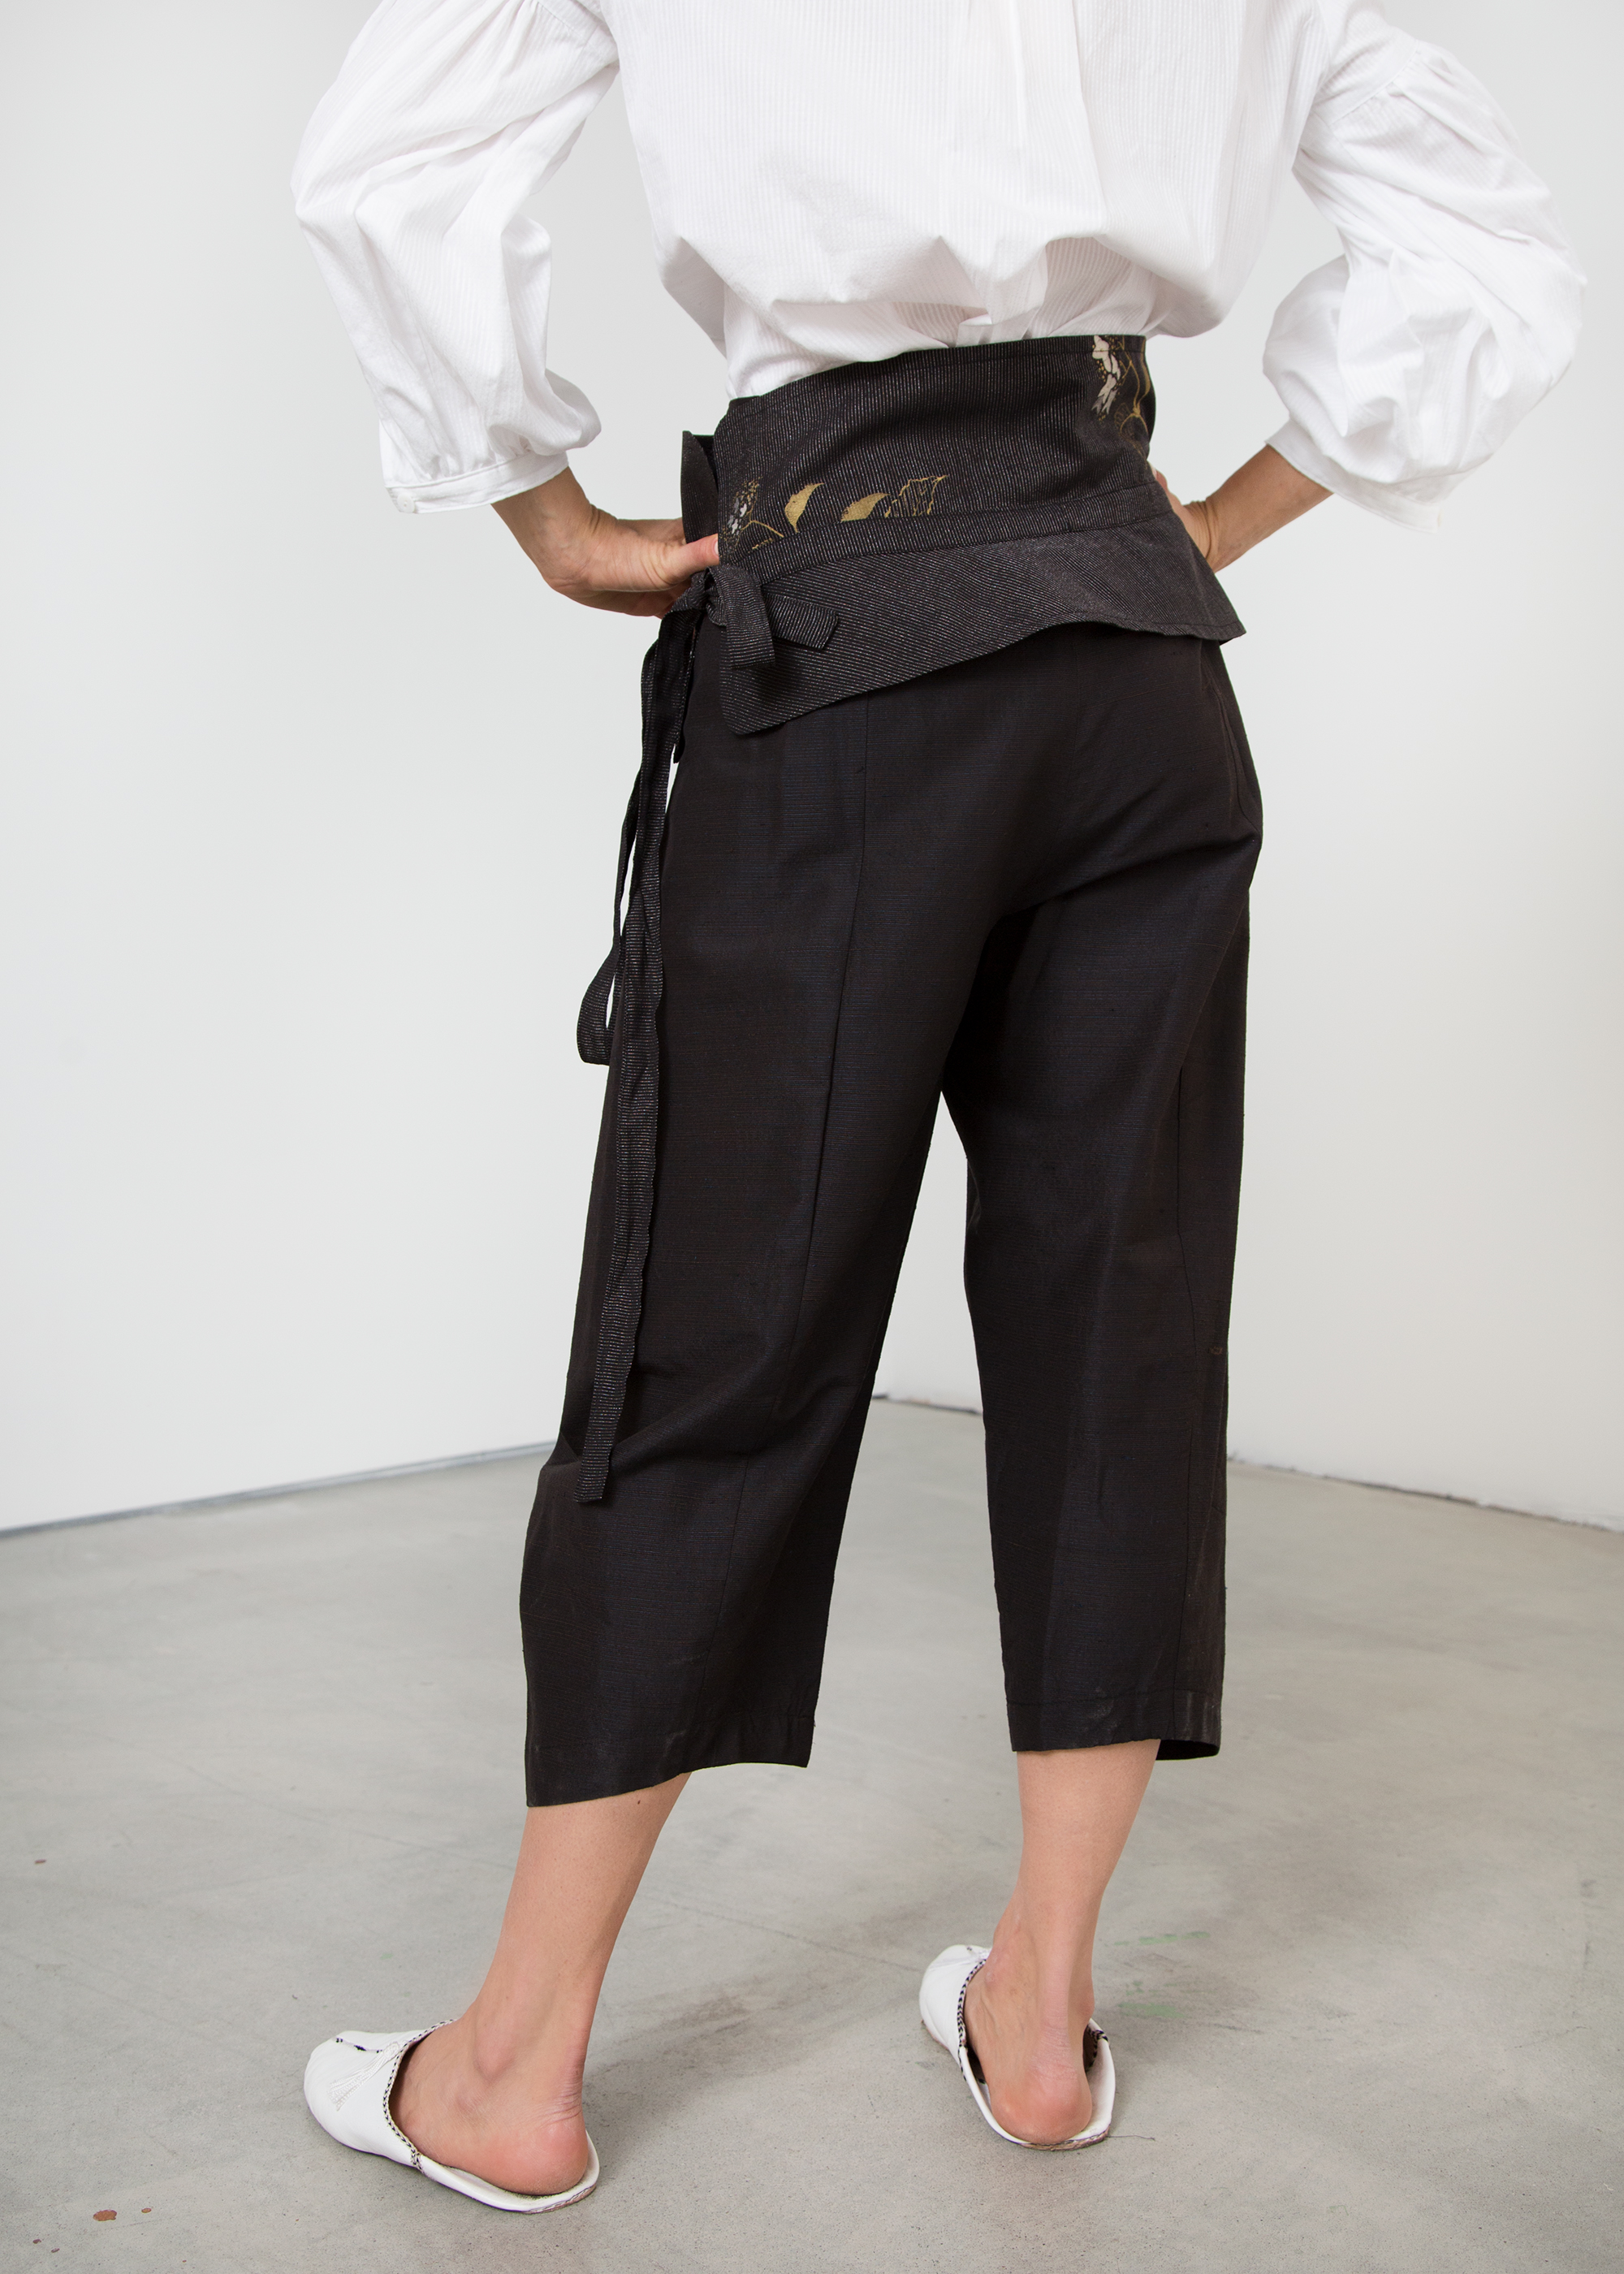 outfit7-amy-pants-7.jpg